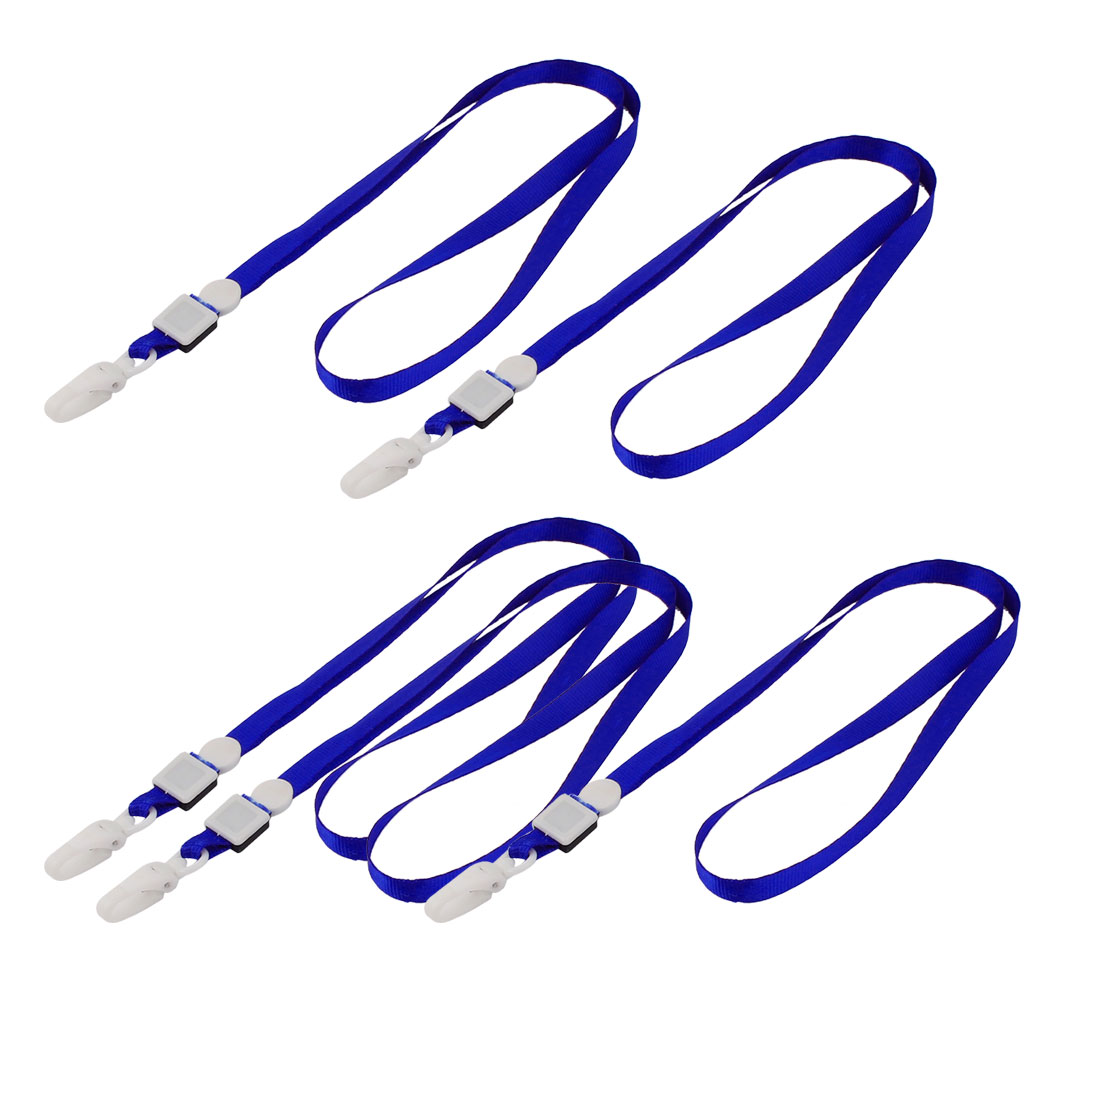 Unique Bargains 5 Pcs Plastic Neck Strap ID Card Badge Holder Lanyard School Office Bank Students Stationery Blue